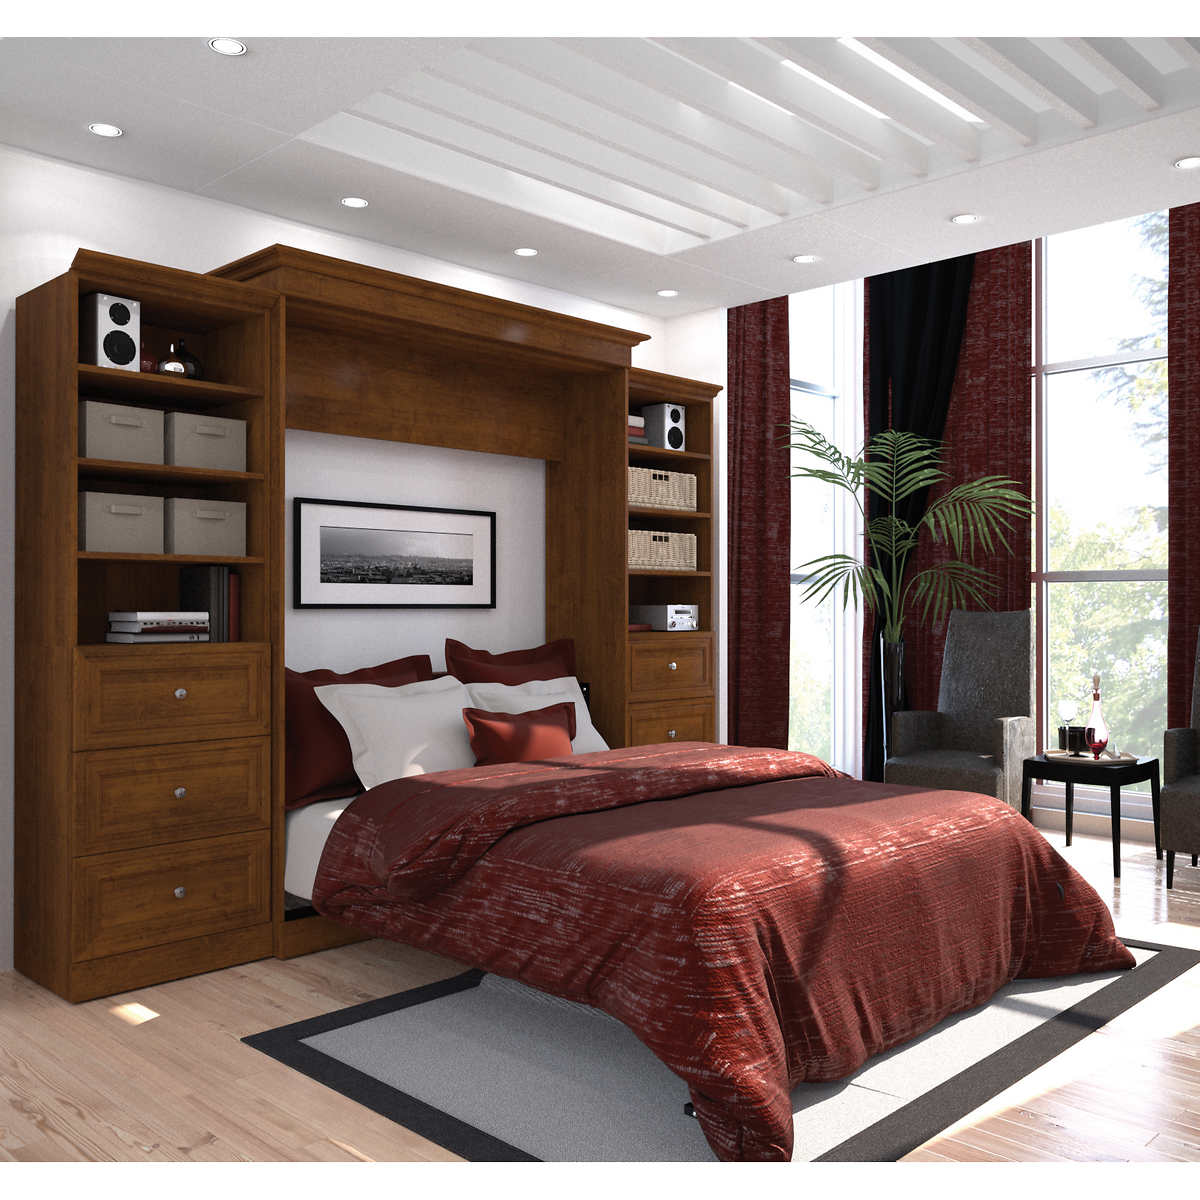 Bestar audrea queen wall bed with two 25 storage units and bestar audrea queen wall bed with two 25 storage units and drawers in tuscany amipublicfo Image collections